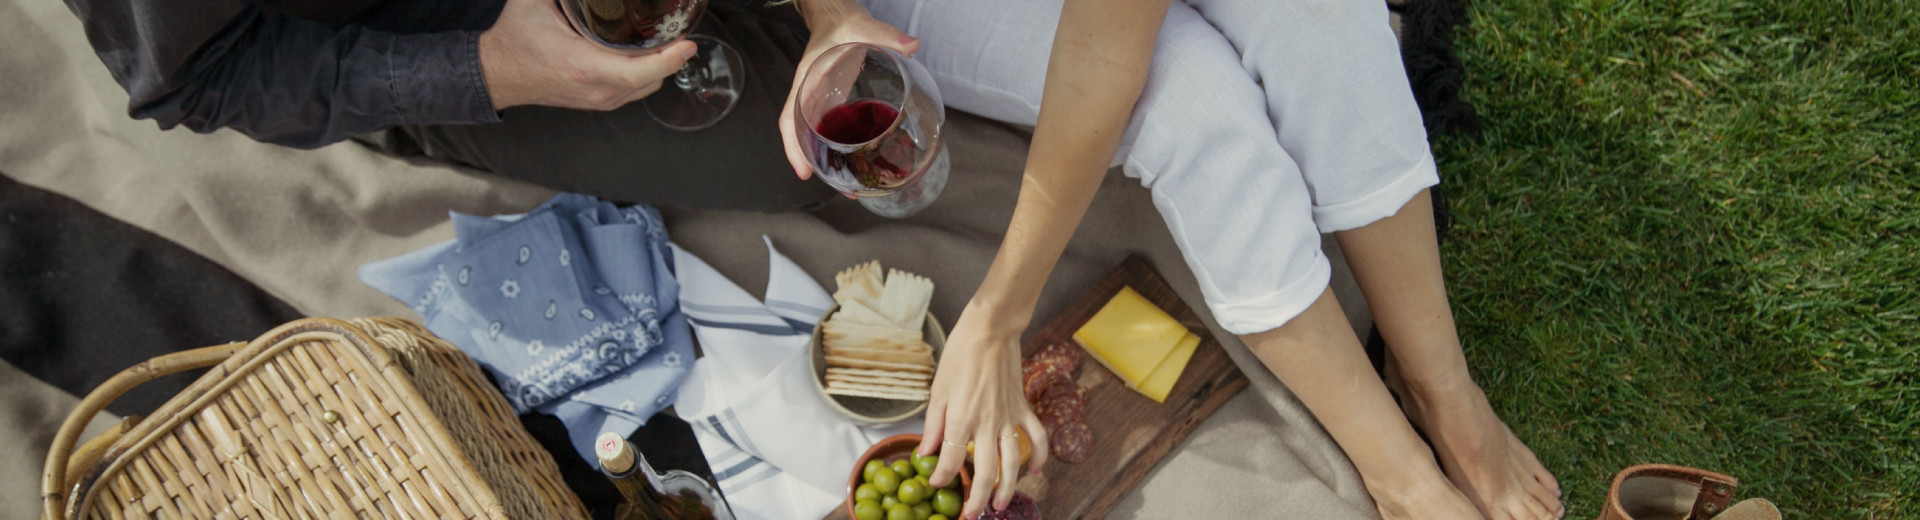 Plan a Willamette Valley wine country stay with the planning assistance of the Atticus Hotel concierge.